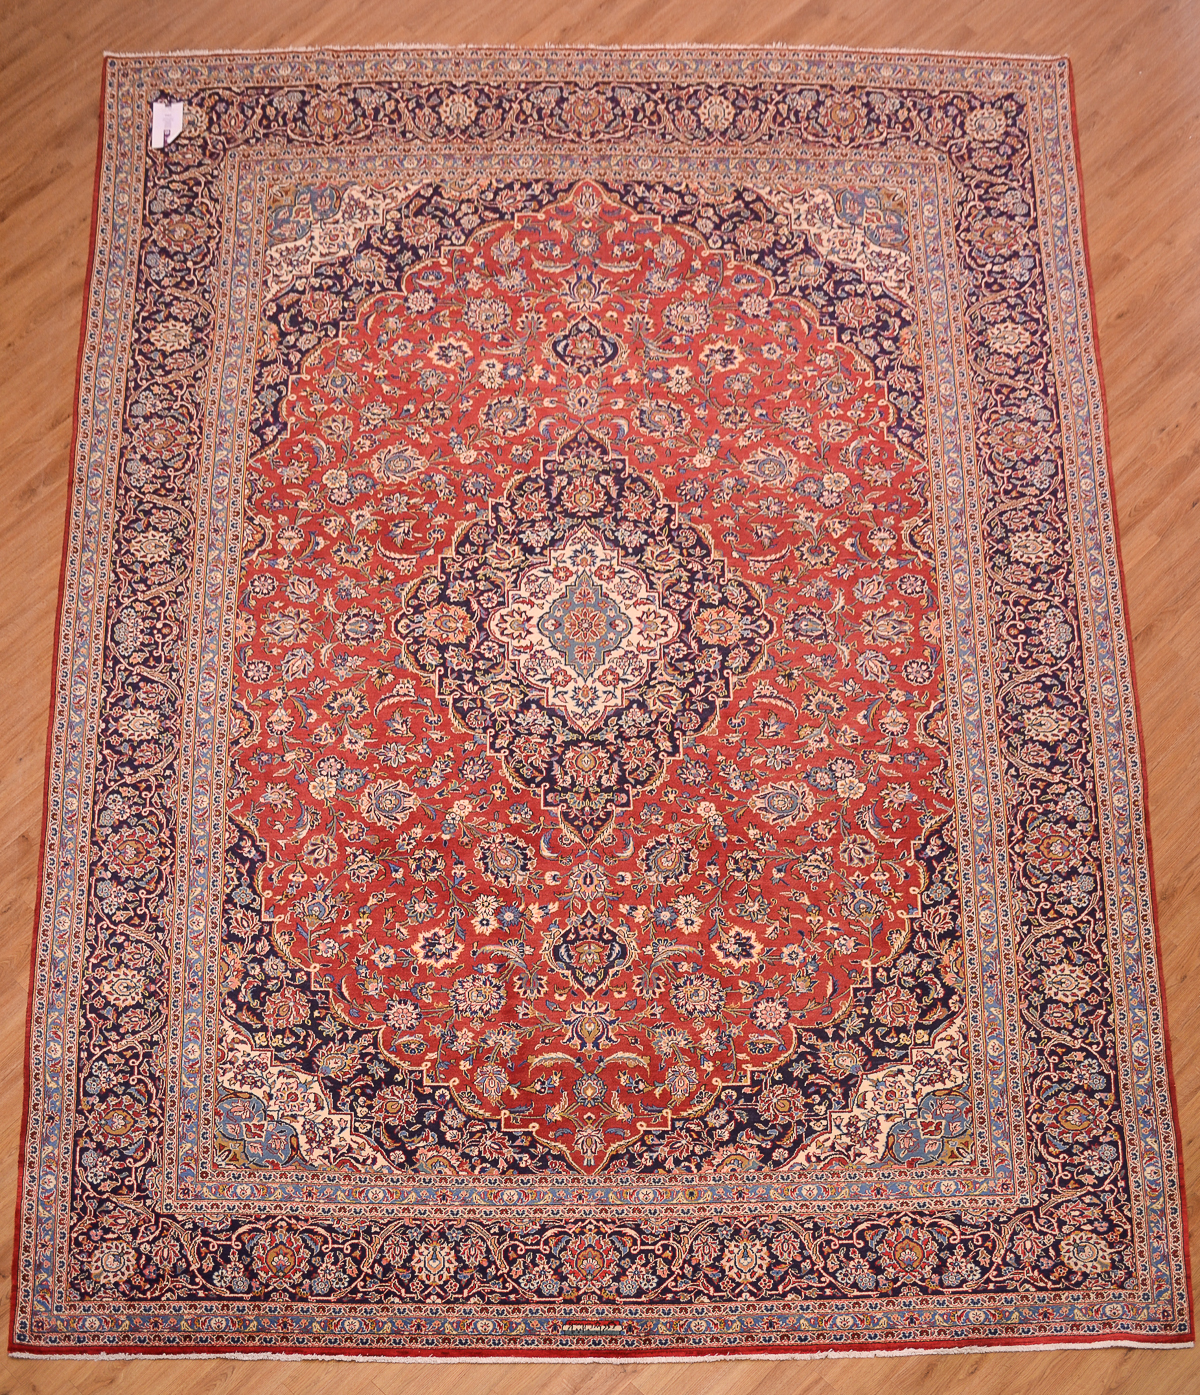 Shop Classical Kashan Medallion Hand Knotted Persian Wool: Persian Kashan Carpet 4.18x3.02m